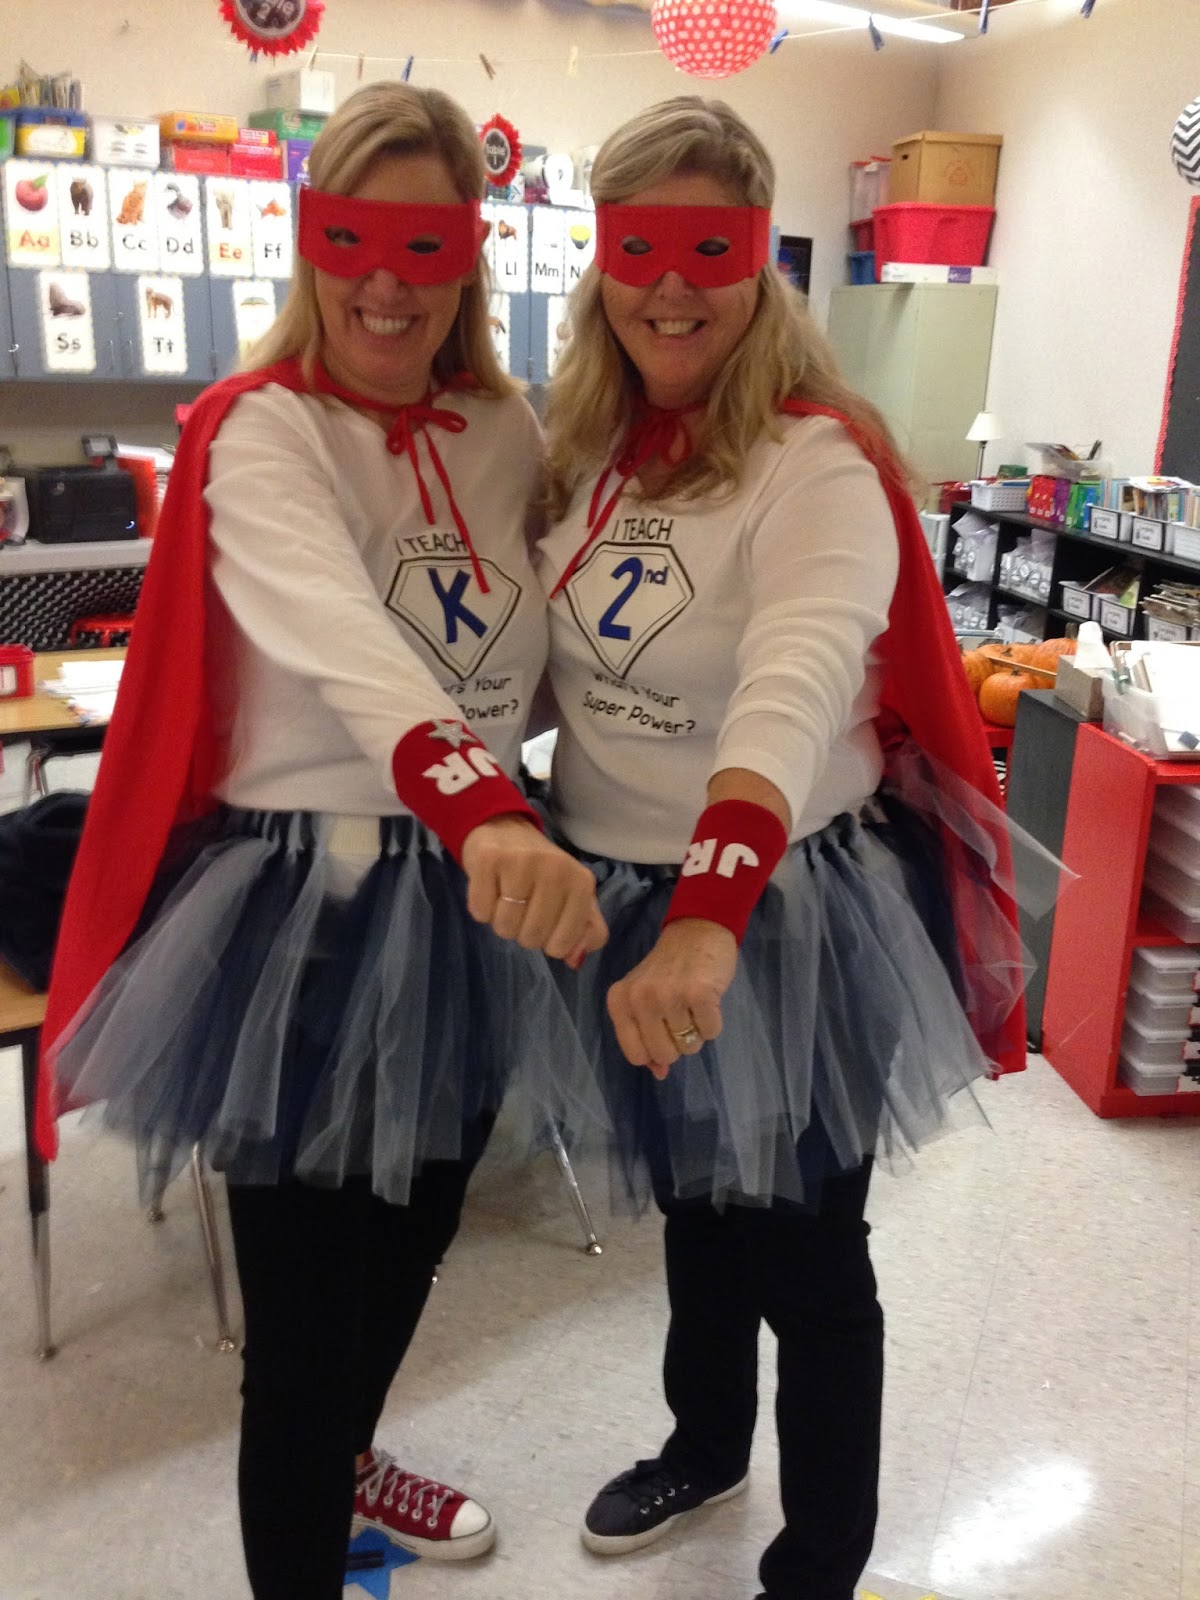 Teacher Superhero Costumes